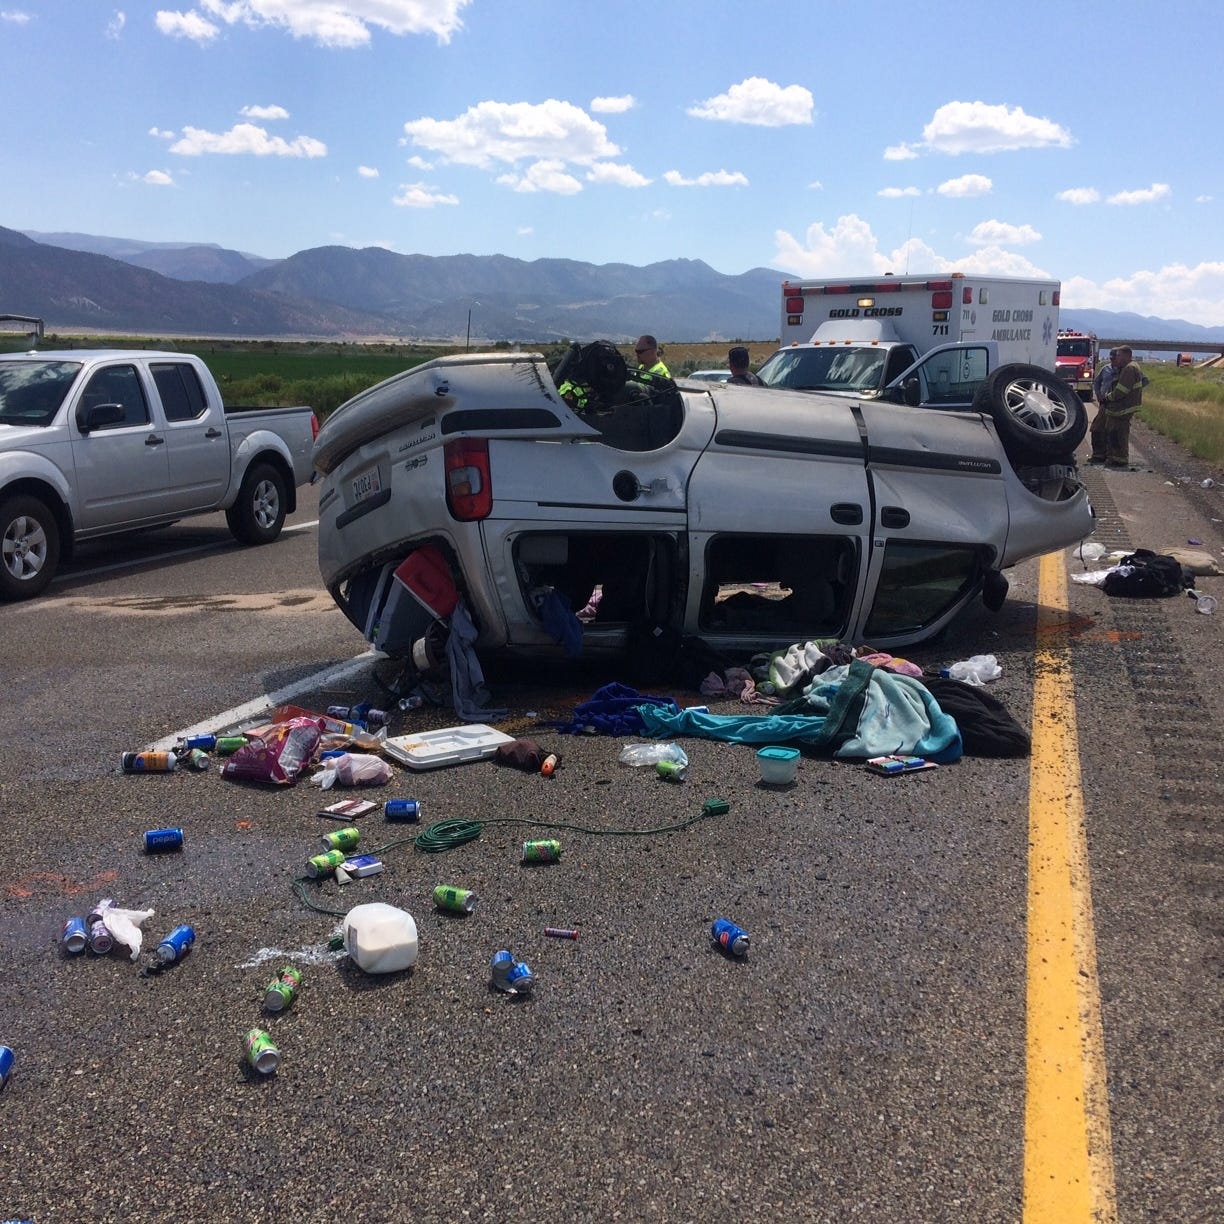 Authorities: 8-year-old boy killed in van crash near Parowan